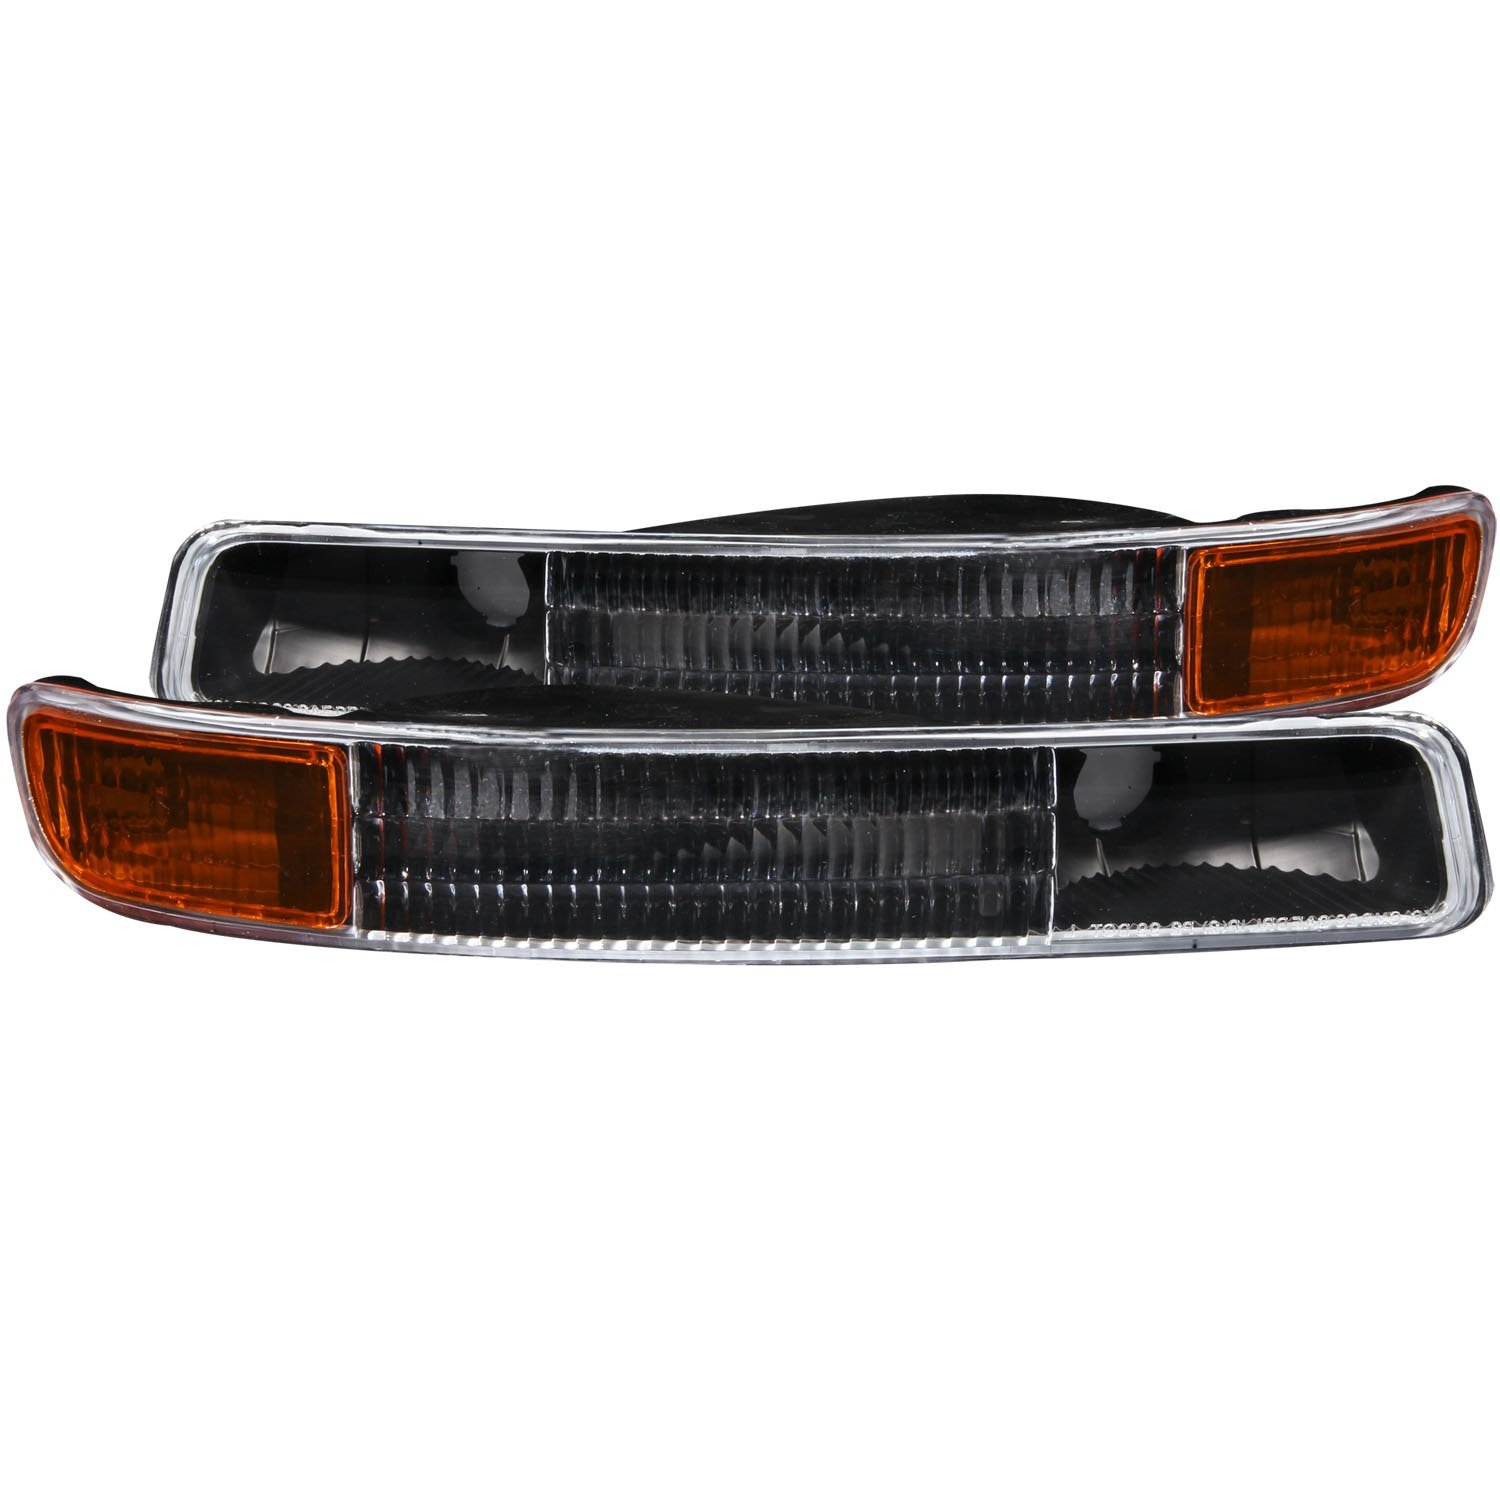 Anzo USA 511005 GMC Black w/Amber Reflector Bumper Light Assembly - (Sold in Pairs)